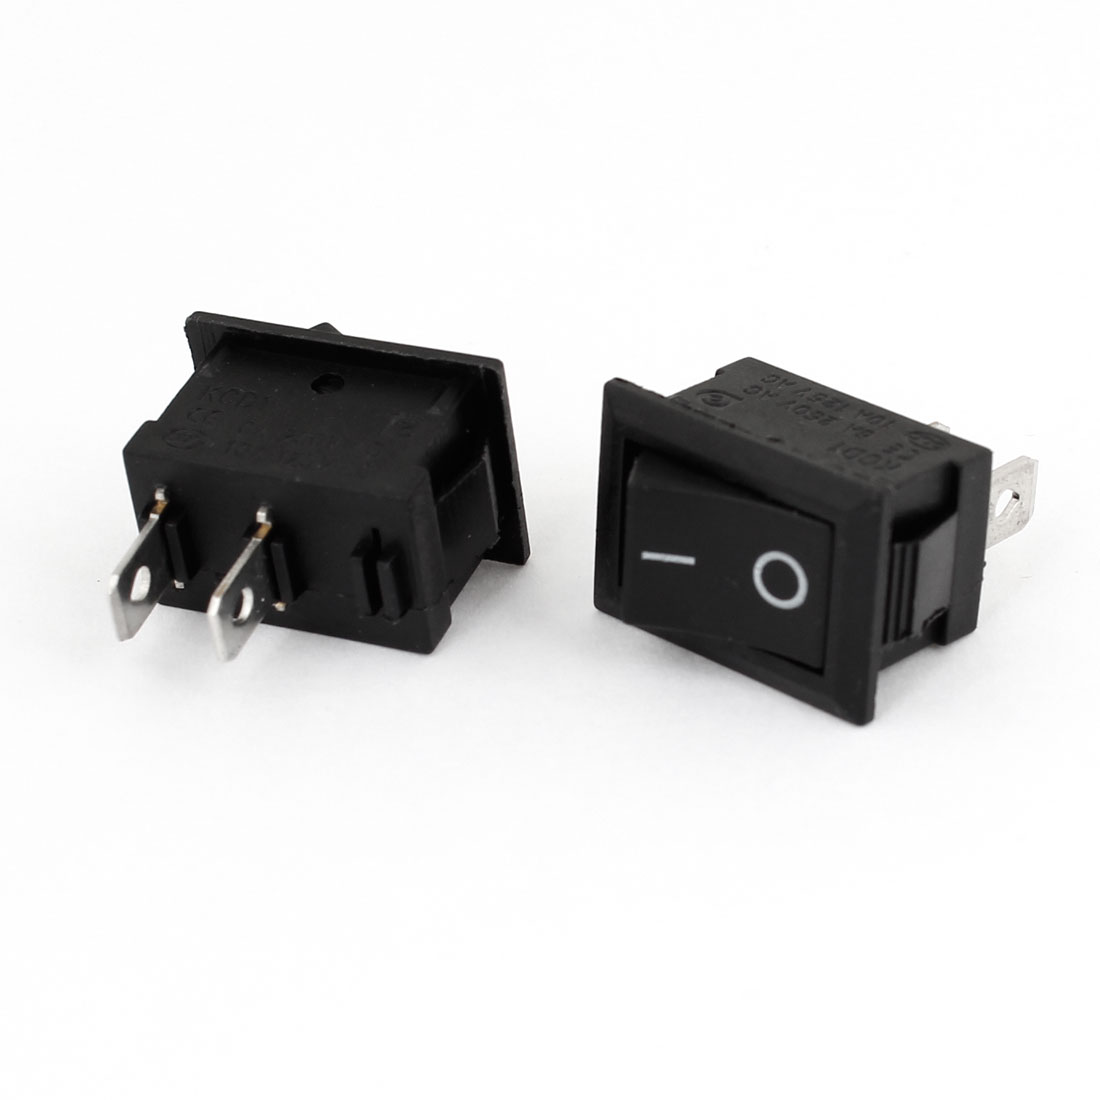 2 Pcs Auto Car AC 6A/250V 10A/125V 2 Pin 2 Position ON/OFF Rocker Switch KCD1